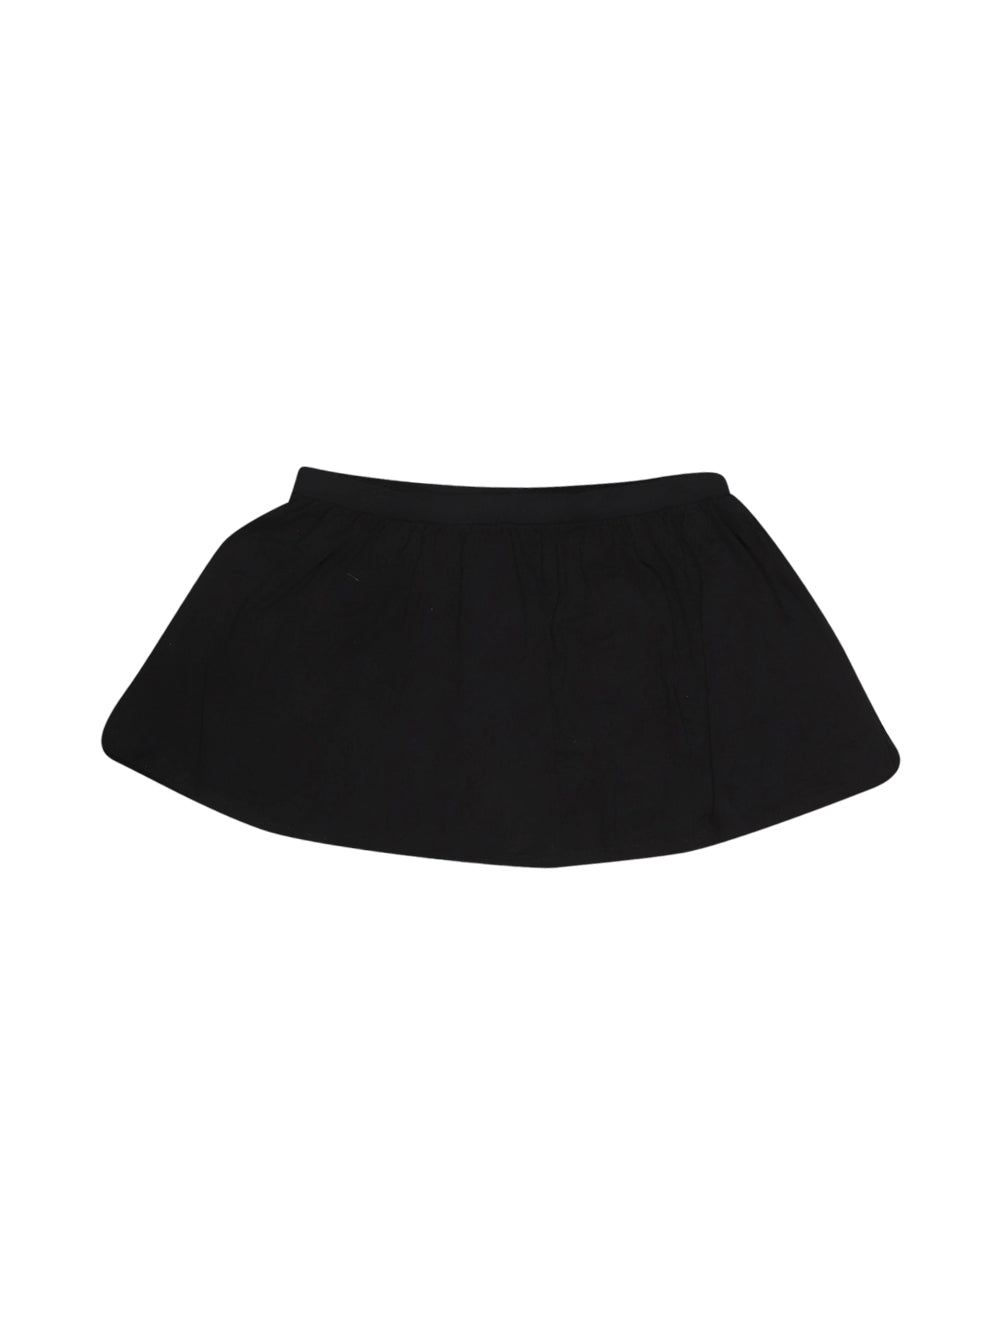 Front photo of Preloved Asos Black Woman's skirt - size 14/XL